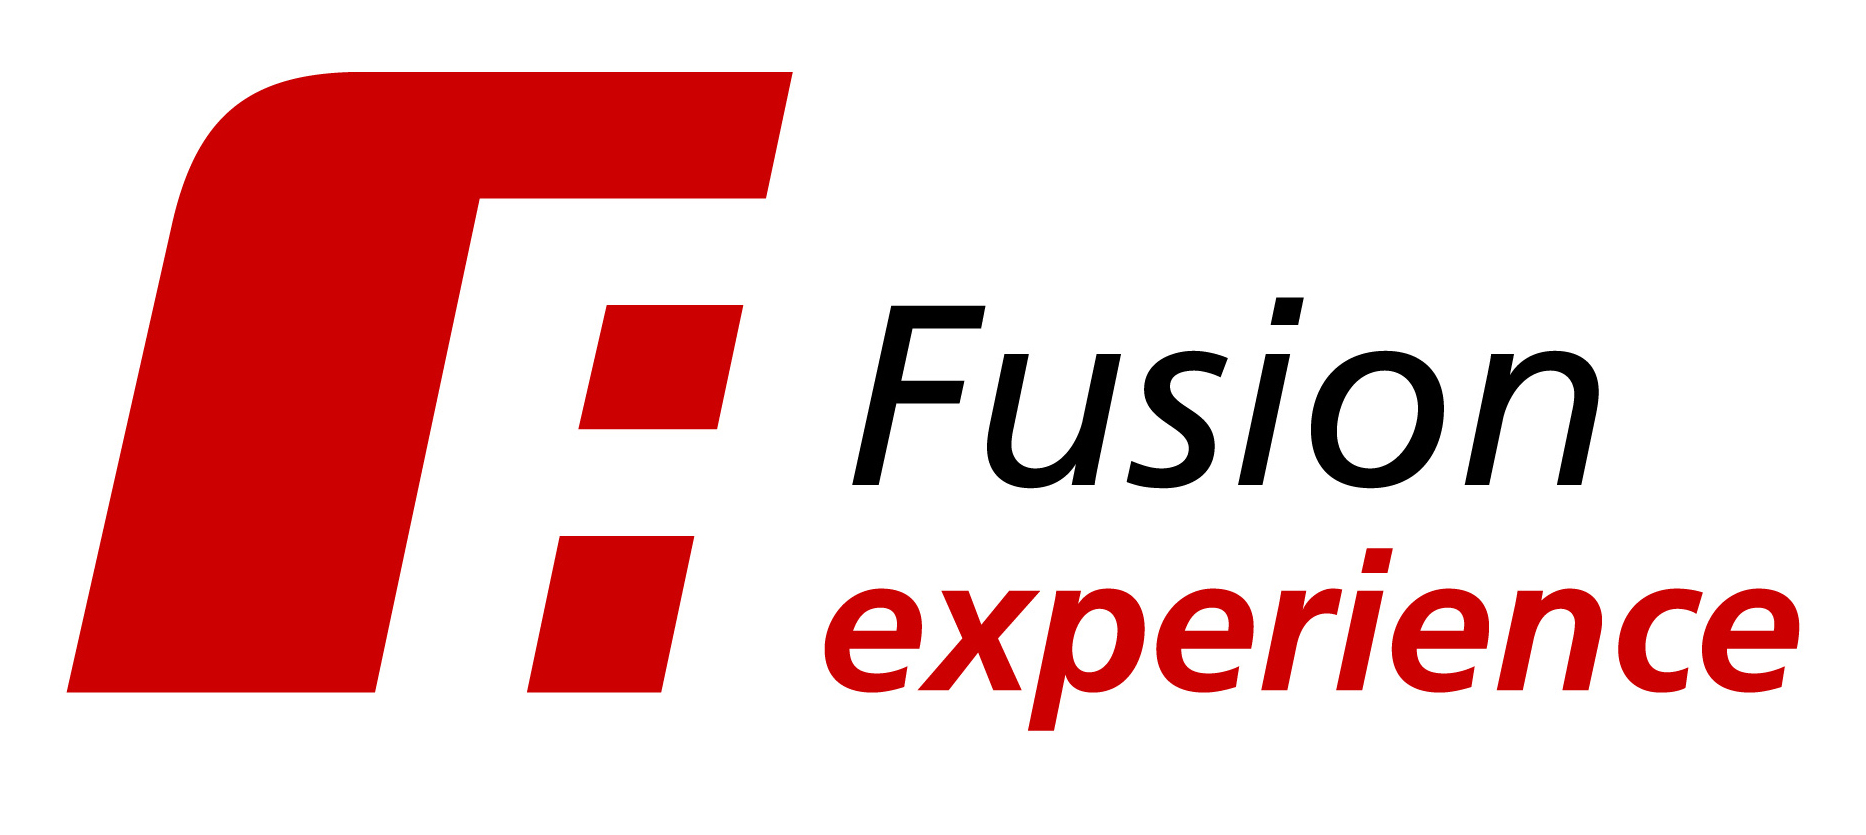 FusionExperience Limited